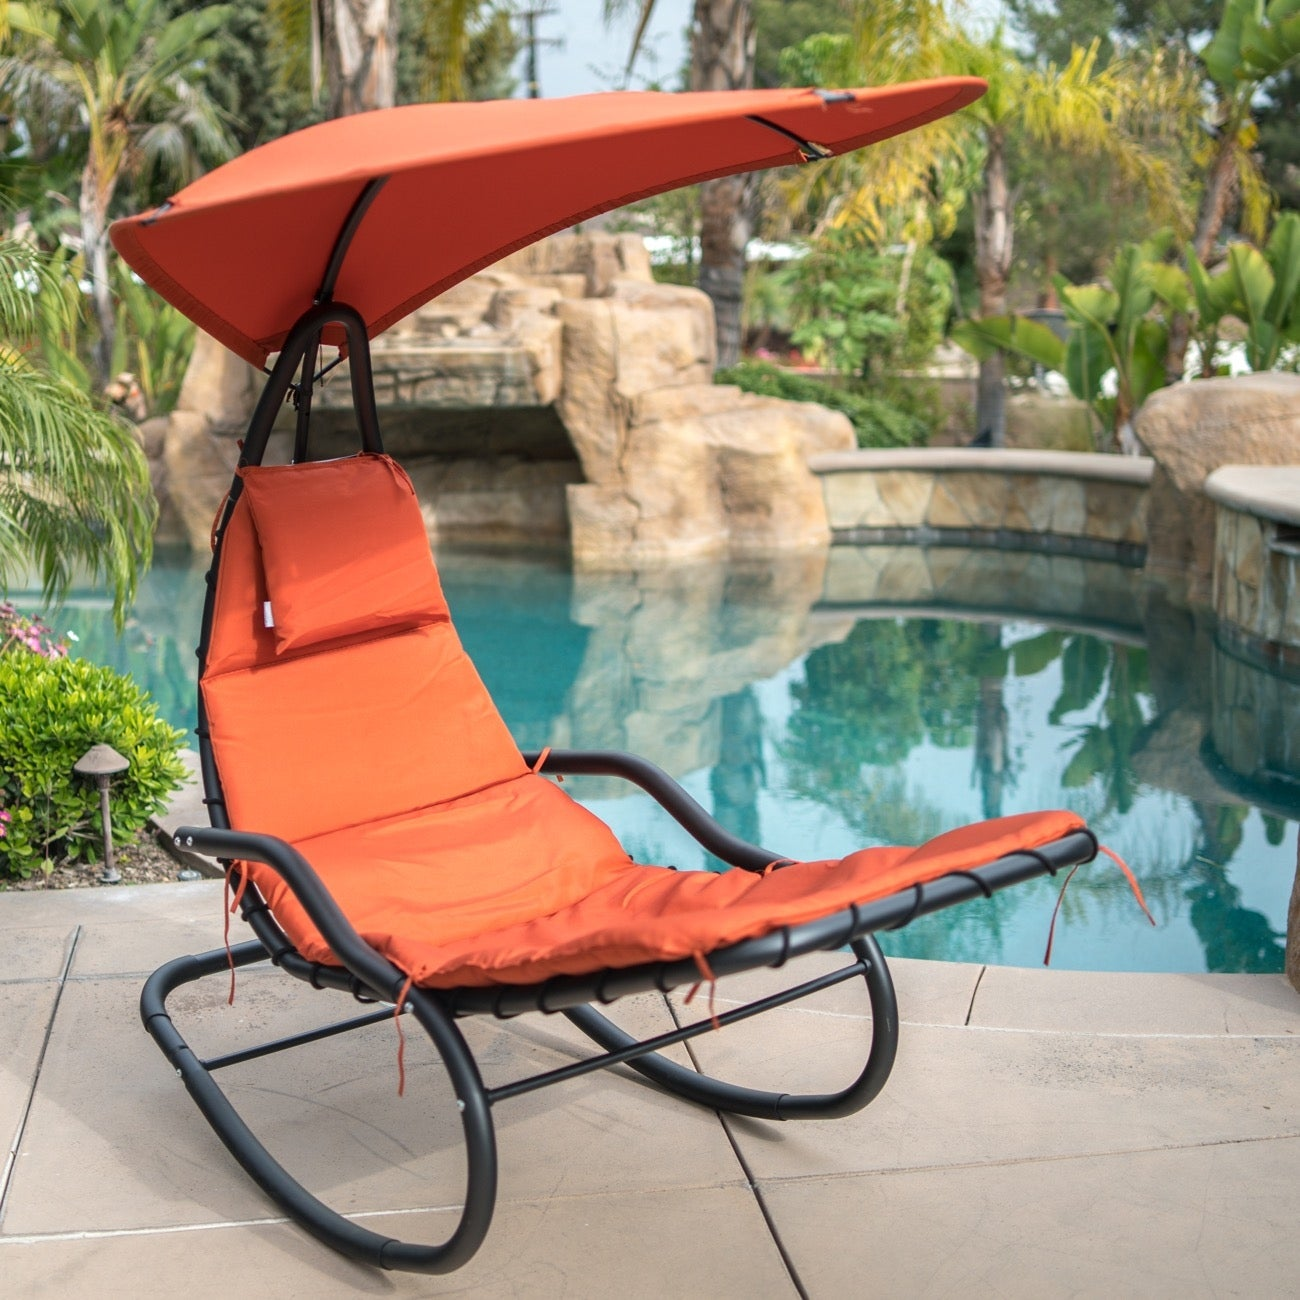 Shop Belleze Hanging Rocking Sunshade Canopy Chair Chaise Umbrella